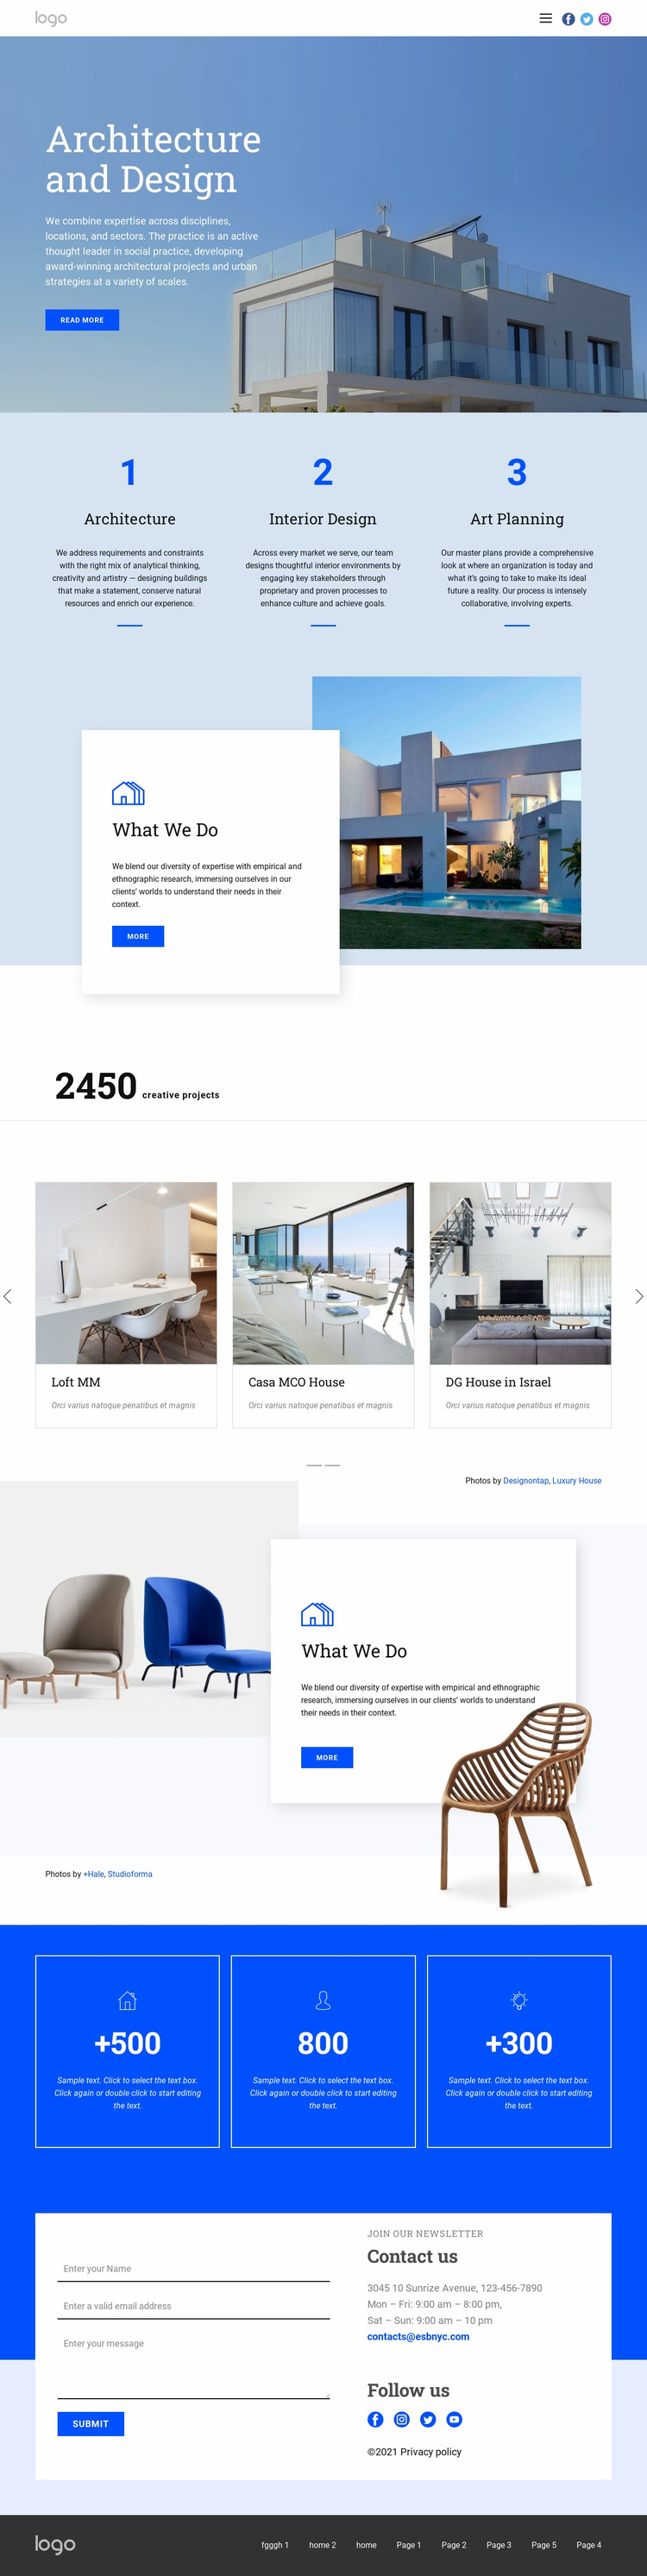 Architecture and design Website Mockup